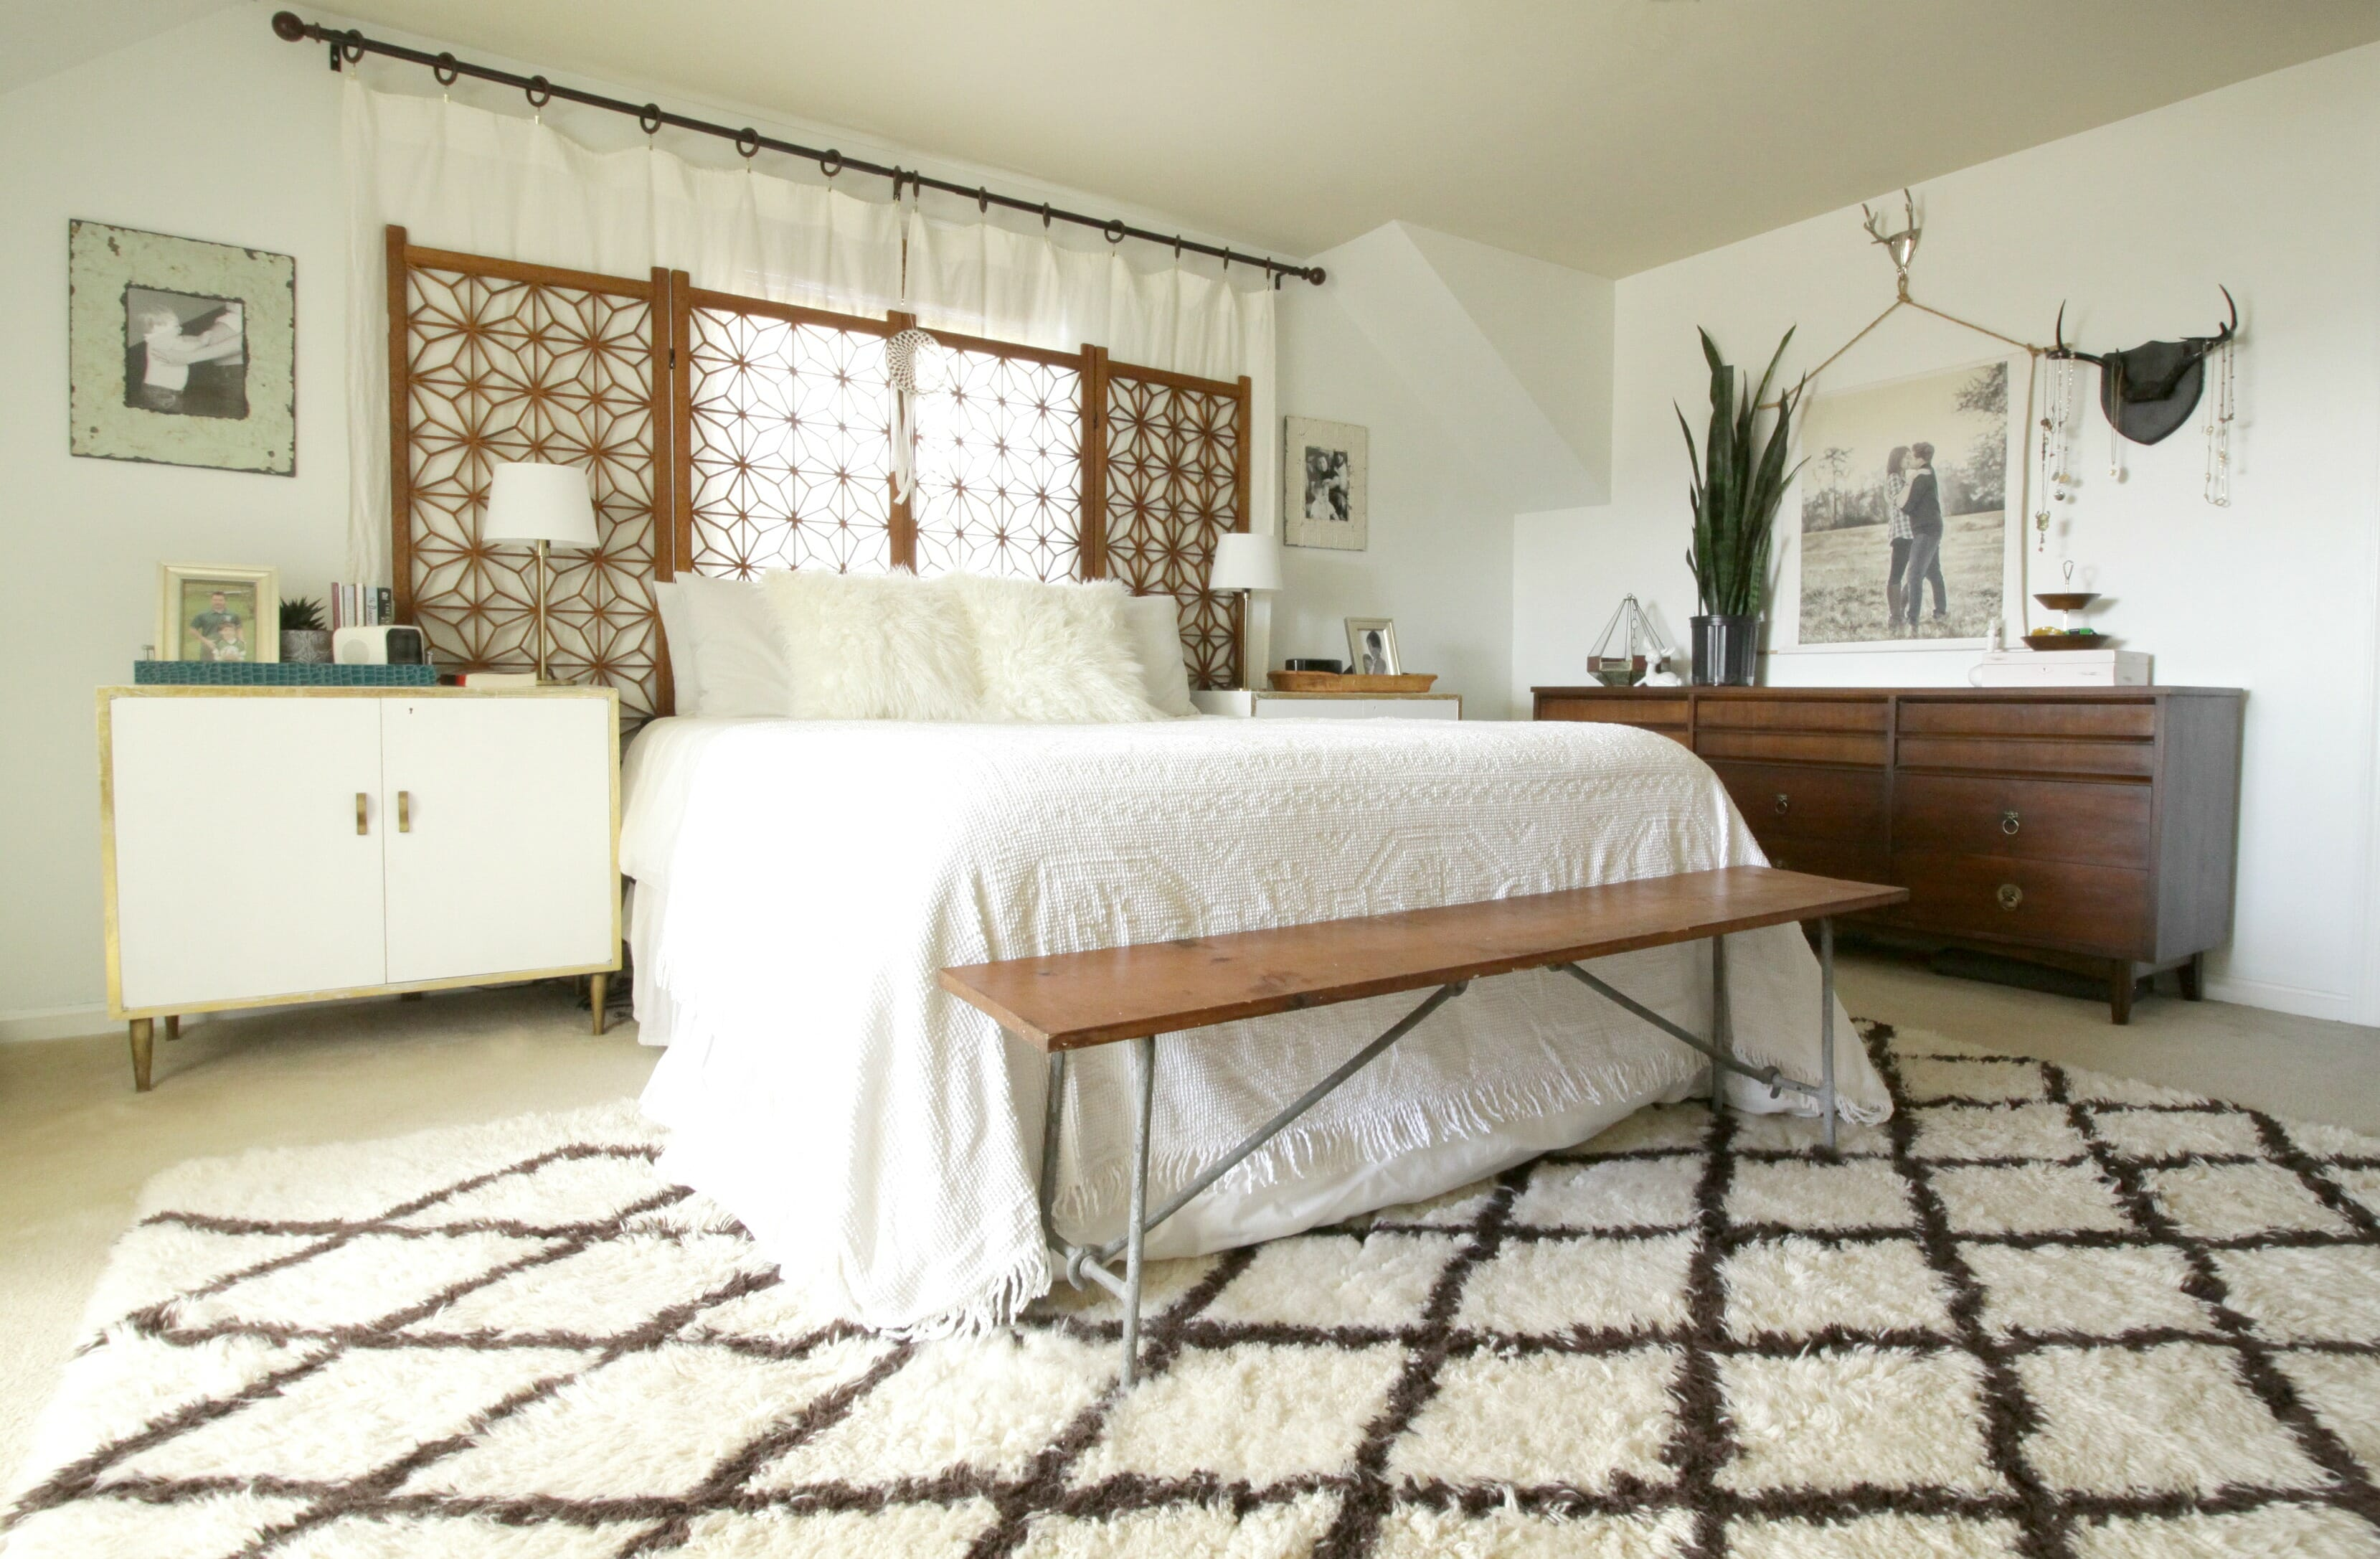 Boho Modern White And Wood Master Bedroom And Getting A Good Night 39 S Sleep With Addable